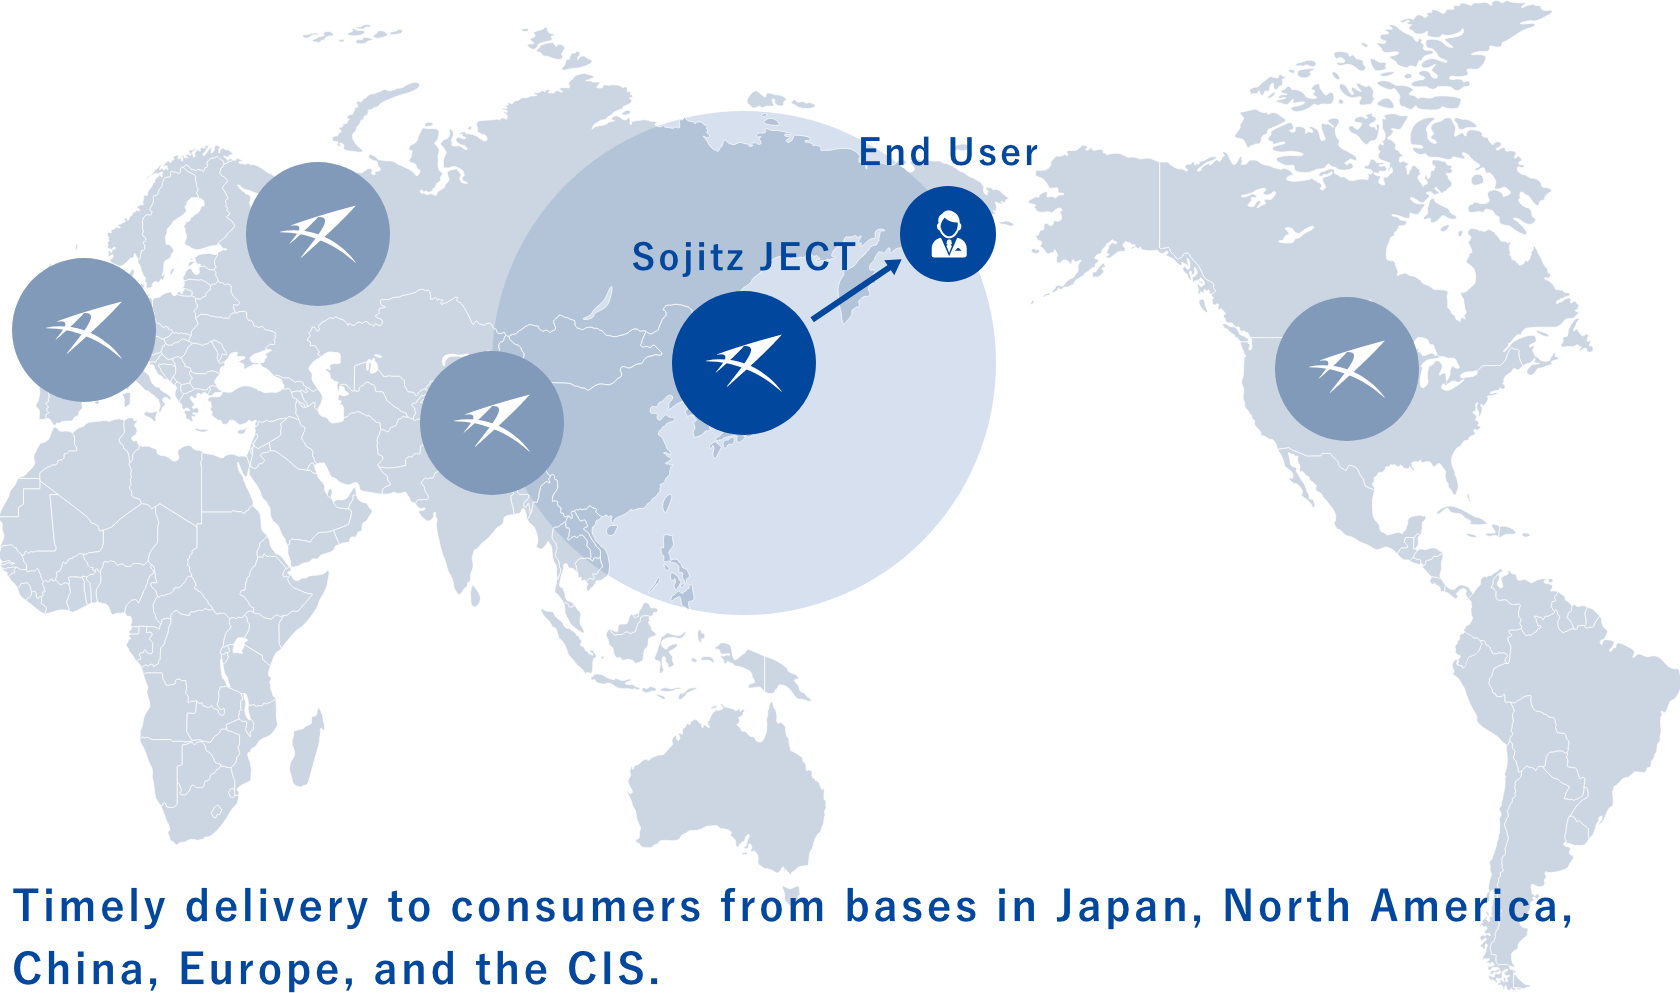 Timely delivery to consumers from bases in Japan, North America, China, Europe, and the CIS.